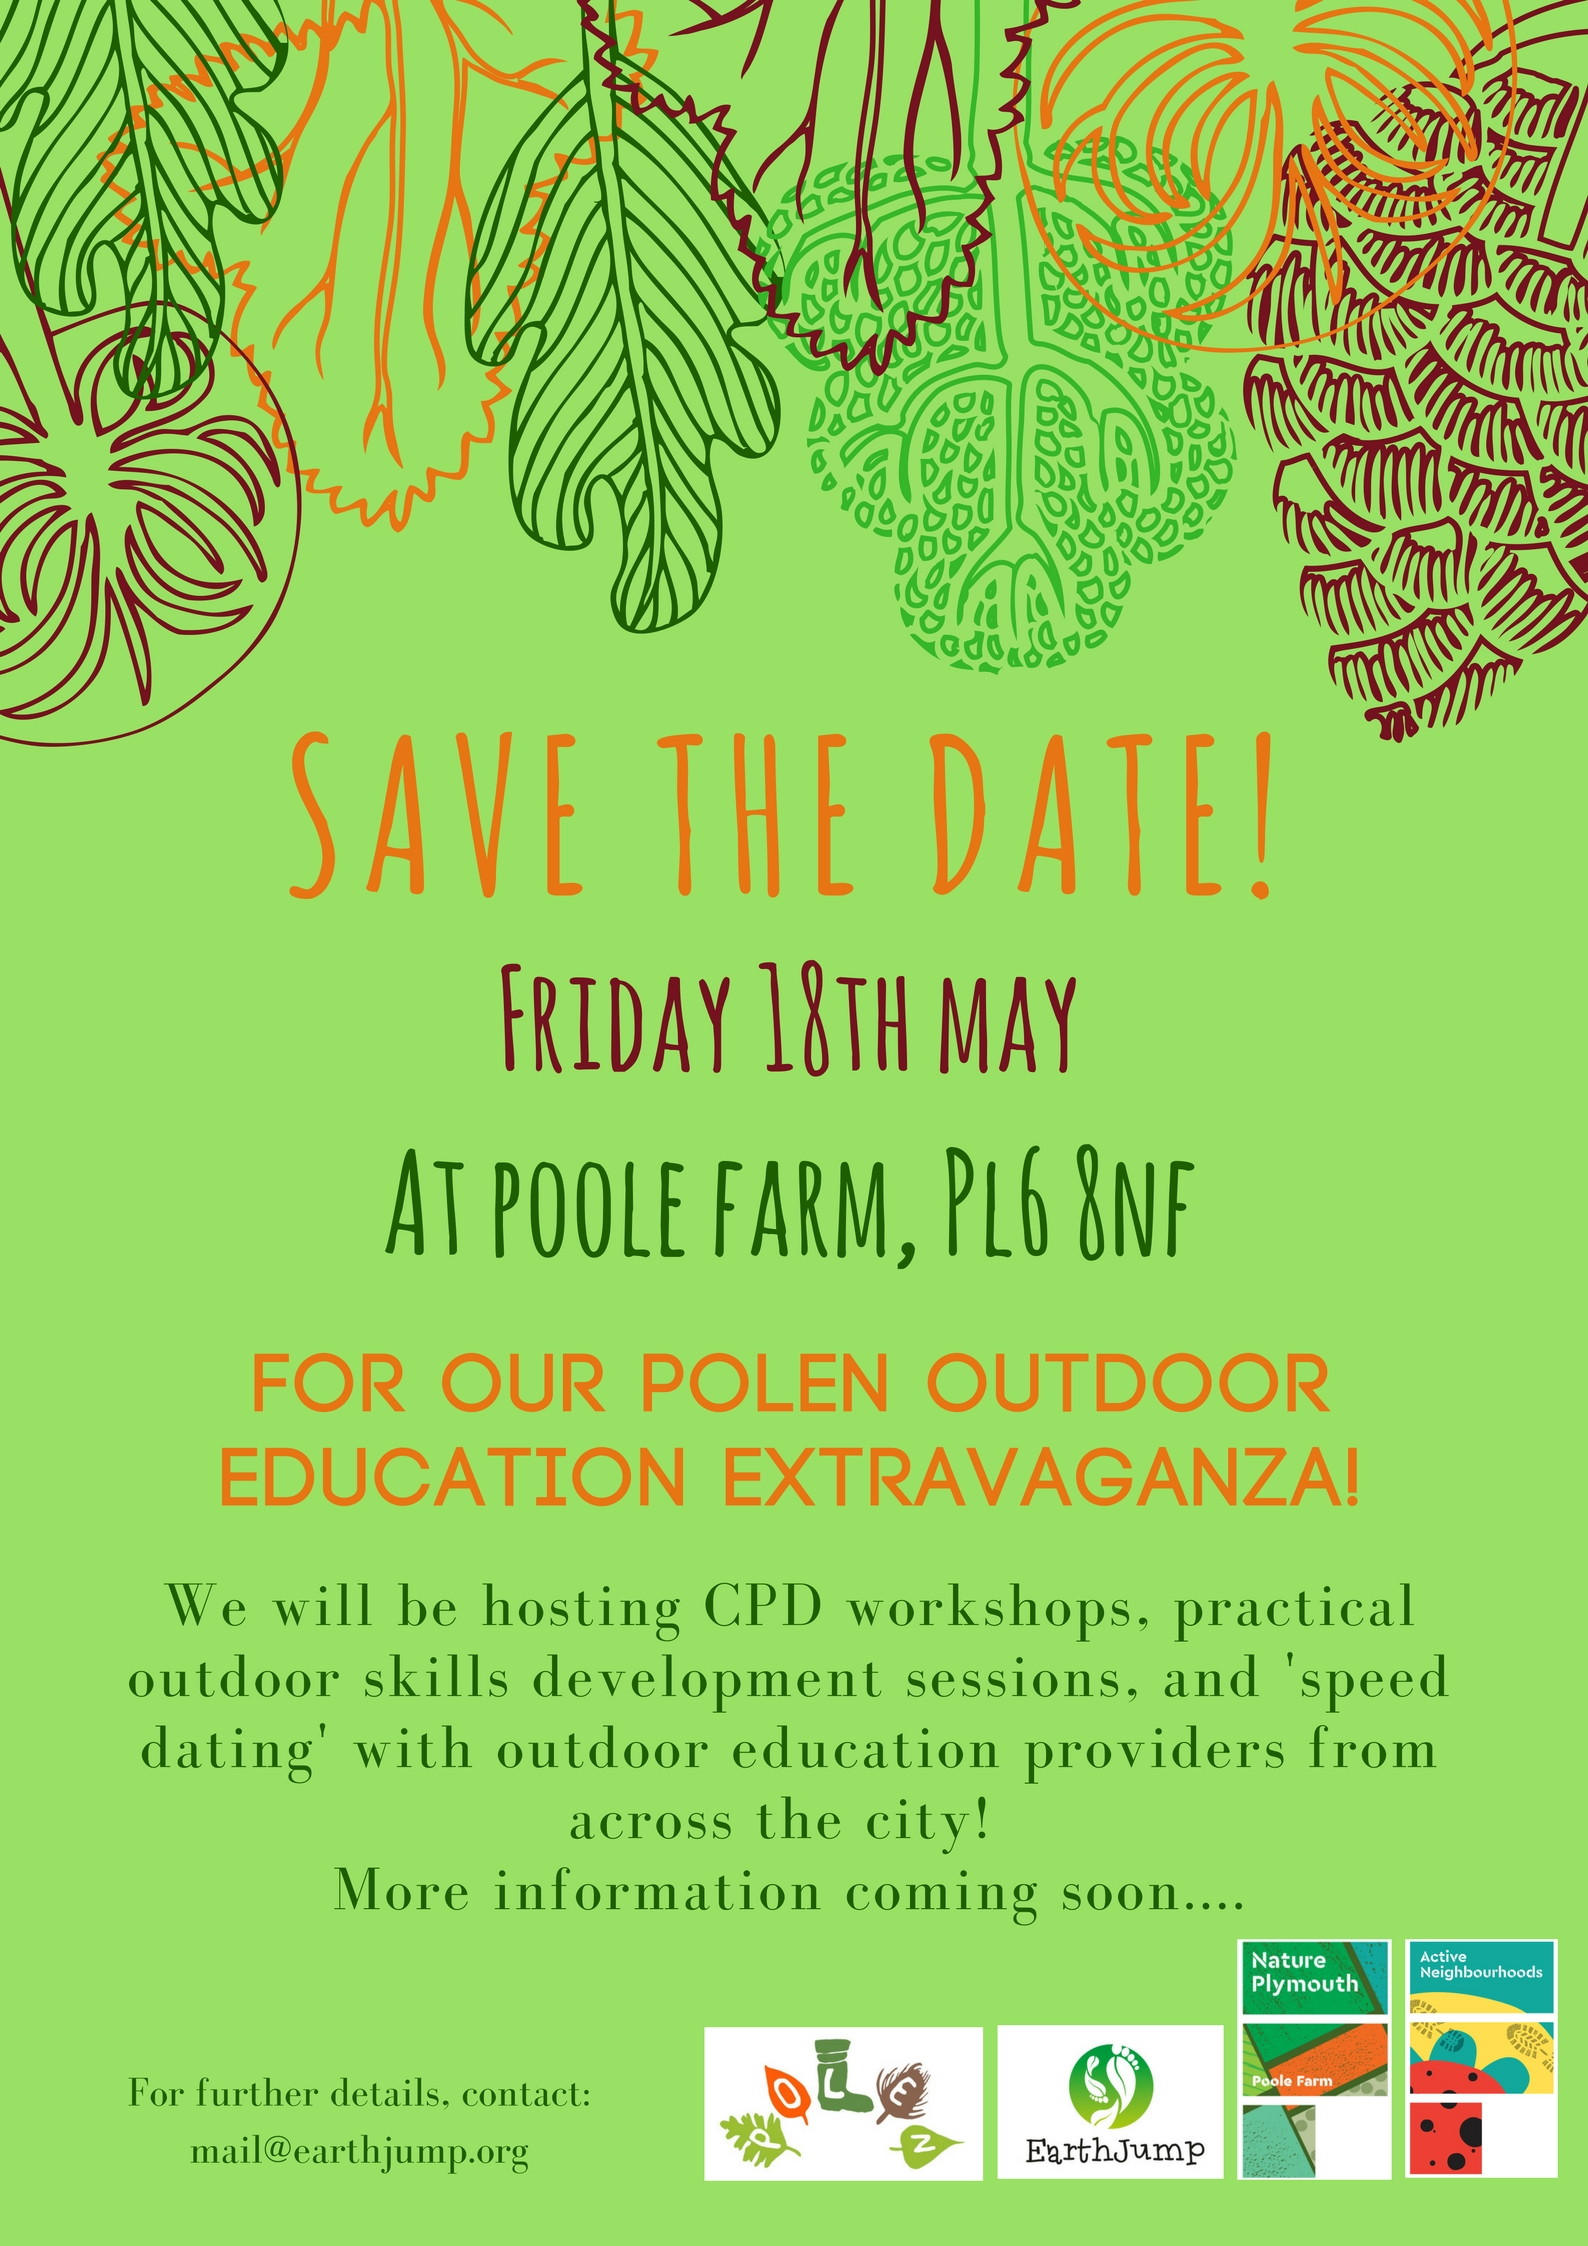 POLEN Outdoor Education Extravaganza